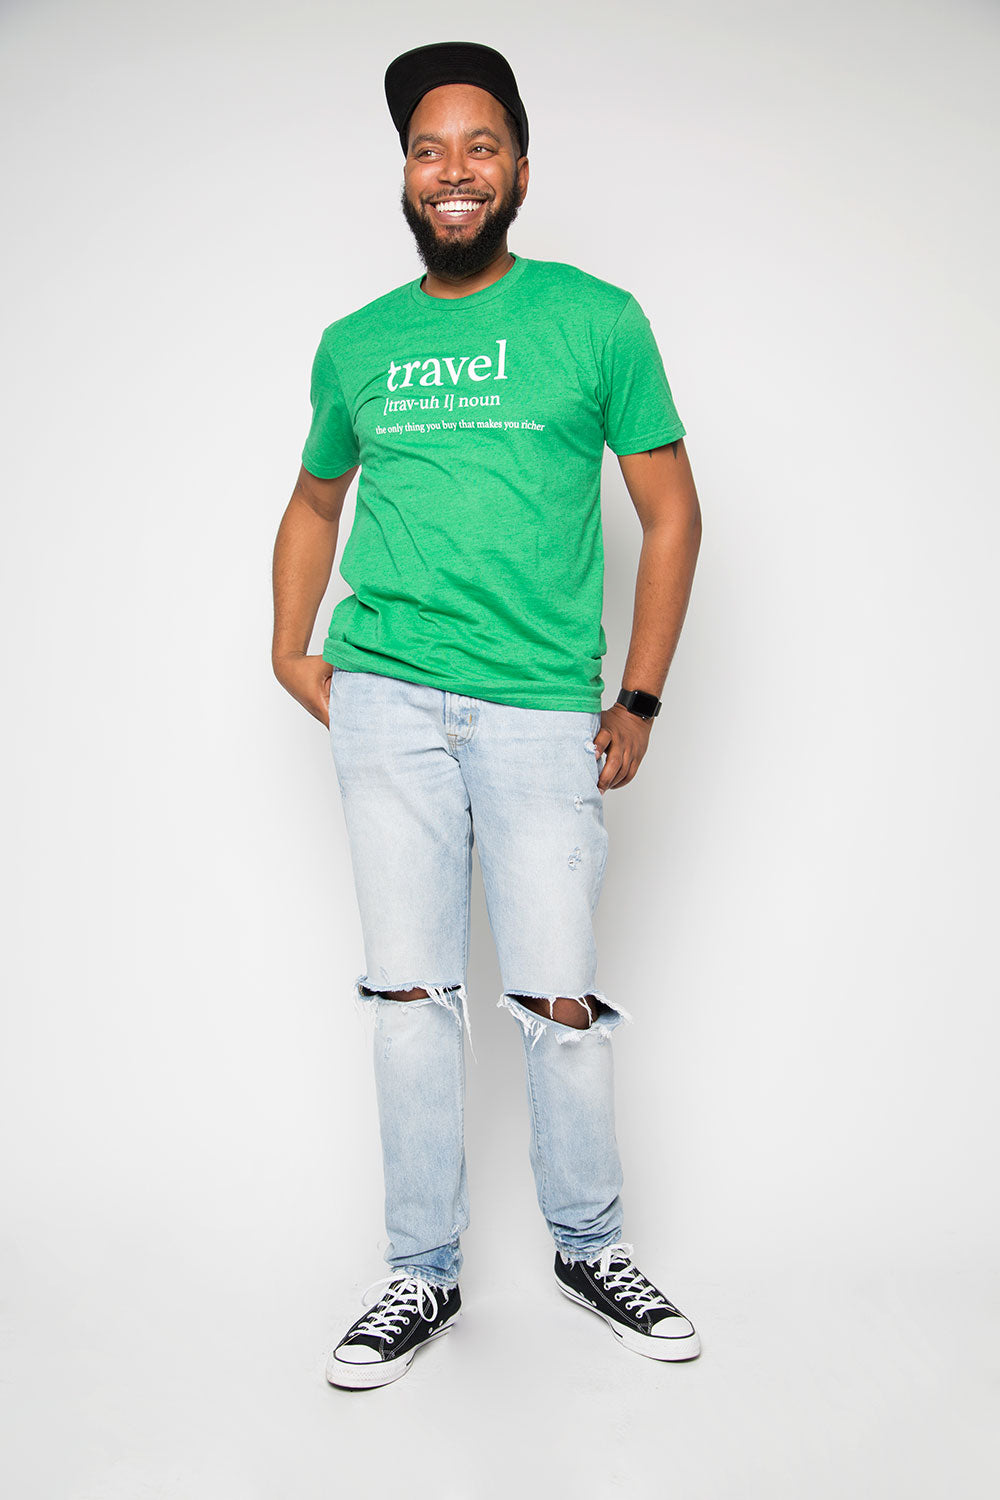 Travel Definition Shirt in Green - Trunk Series, LLC